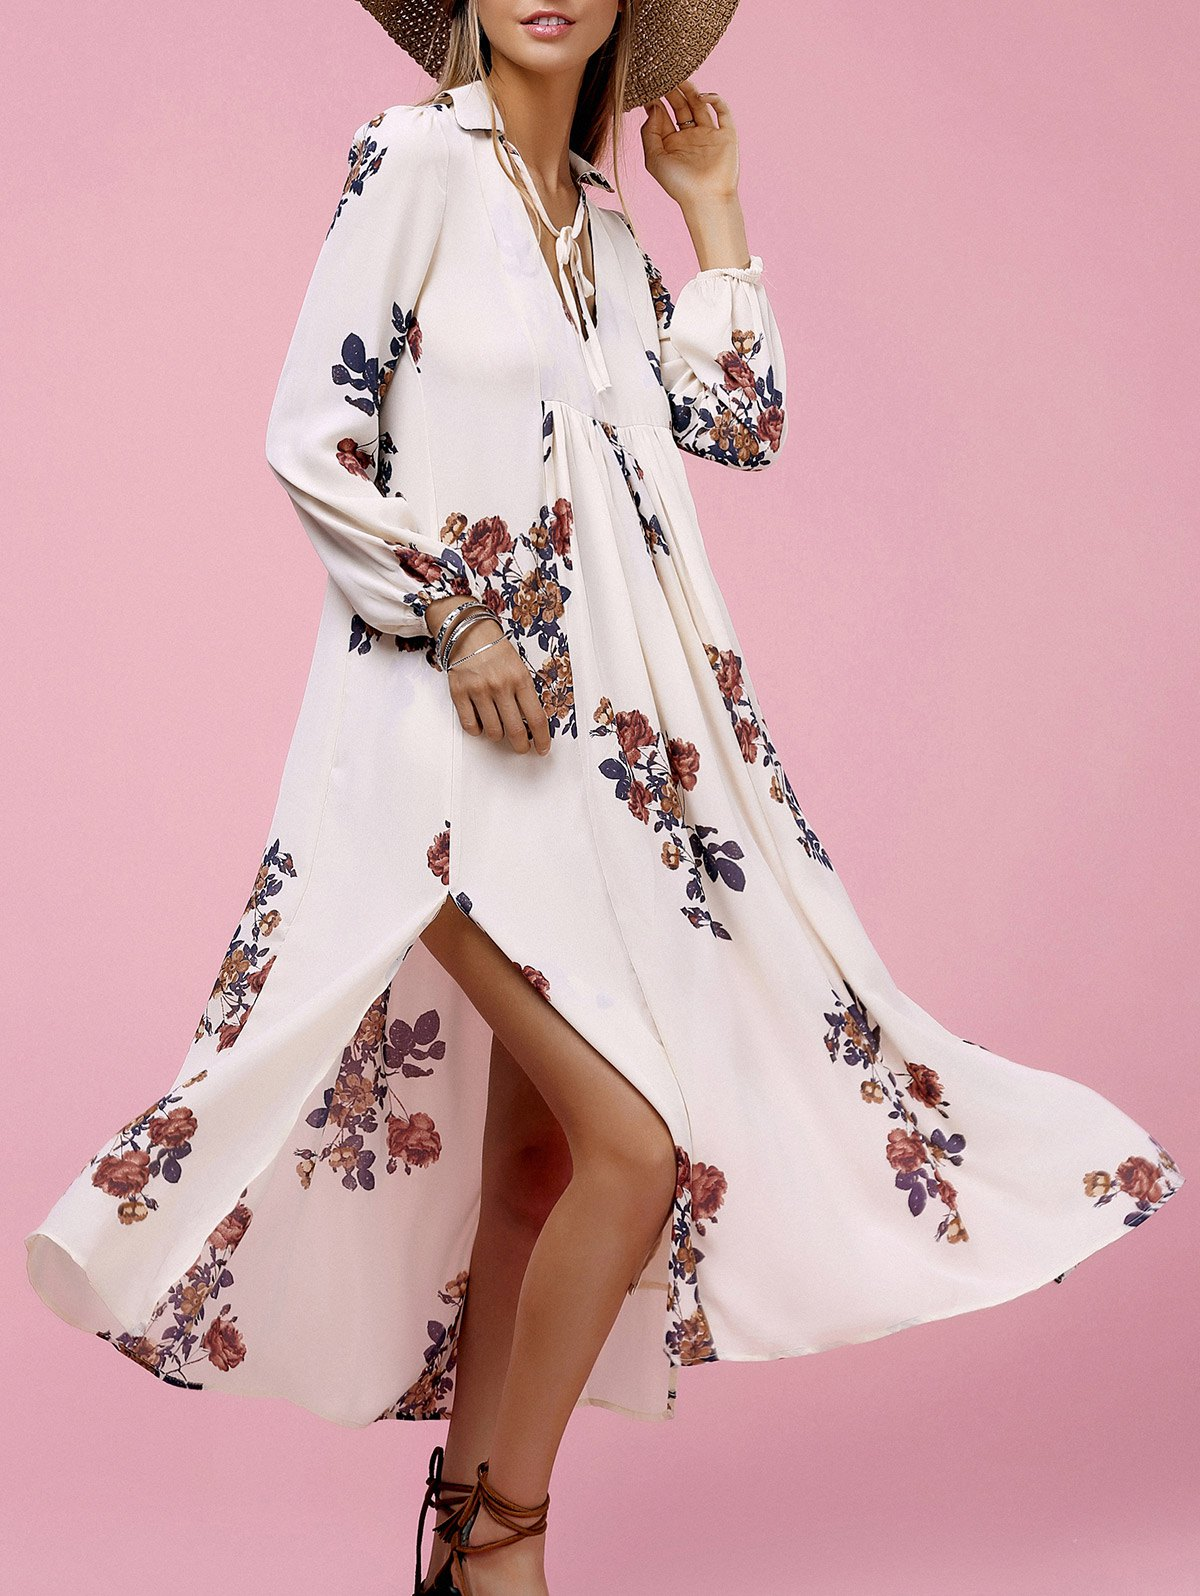 Ethnic Style Women's Long Sleeve Floral Print High Slit Dress